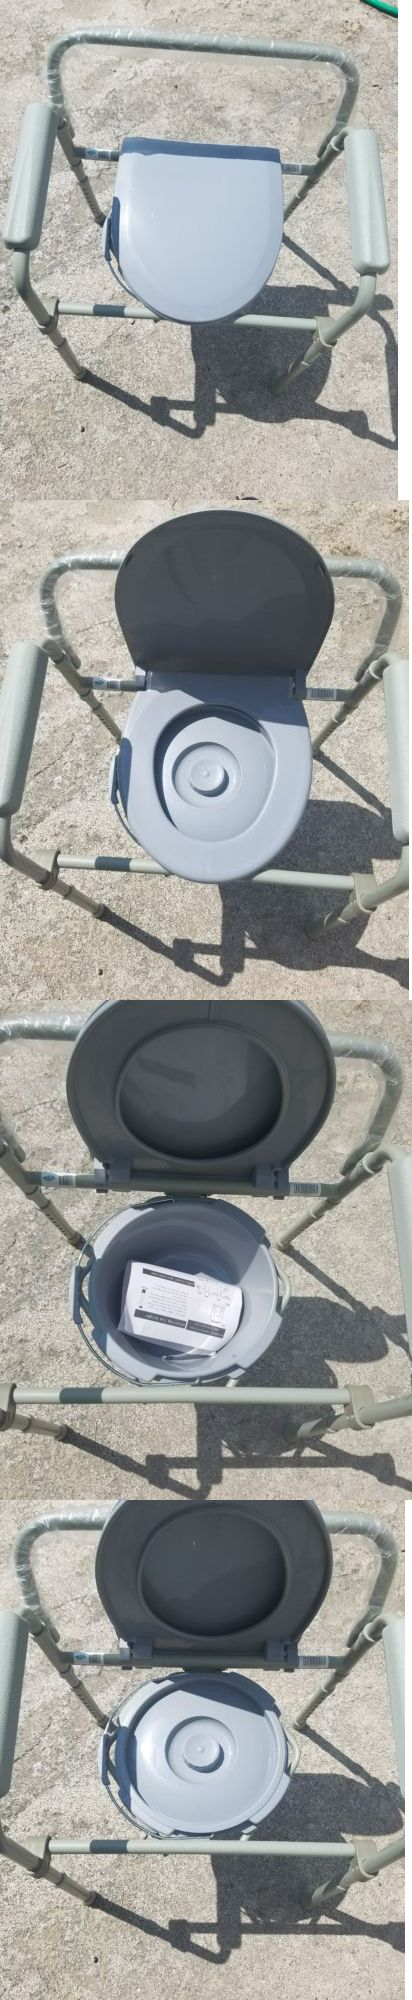 Toilet Frames and Commodes: Bedside Commode Portable Toilet Seat Riser Handicap Bathroom Fold Chair Elderly -> BUY IT NOW ONLY: $43.5 on eBay!